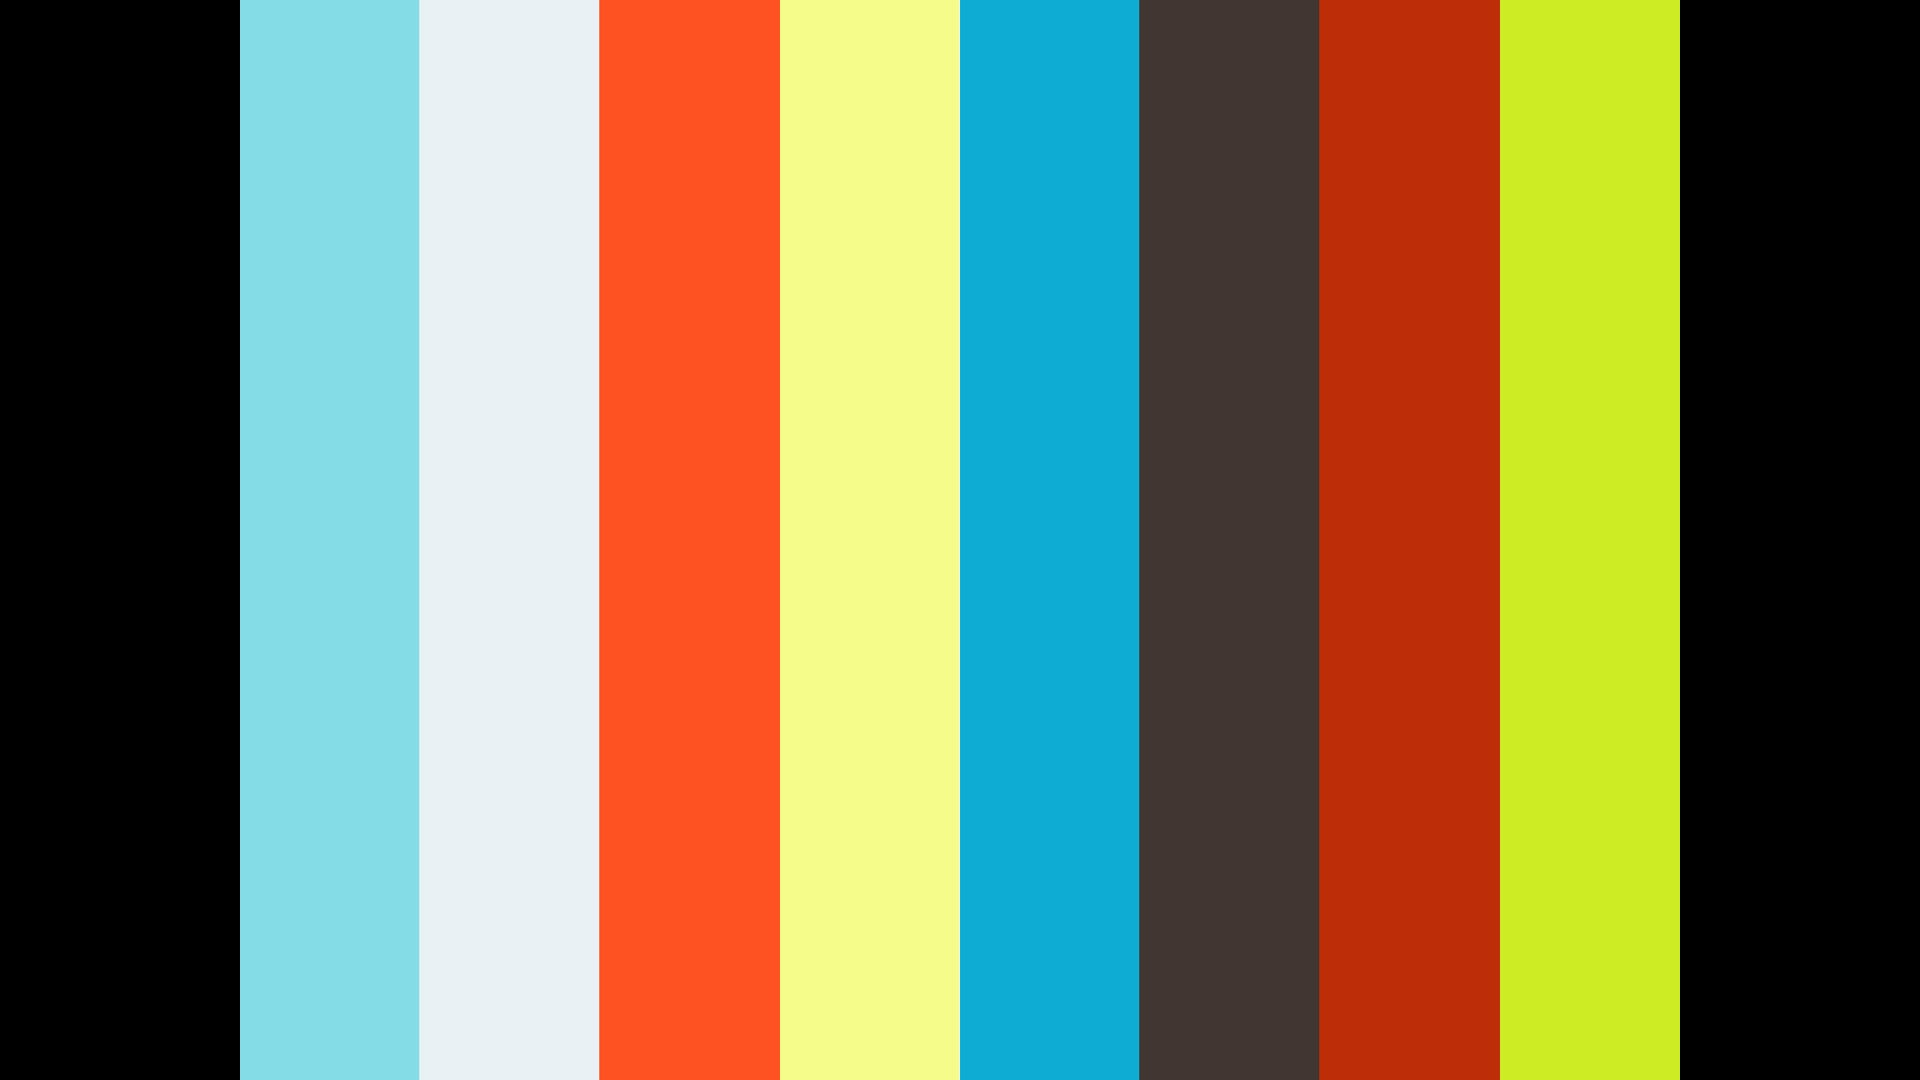 Birds flying overhead at Huon Reef, New Caledonia